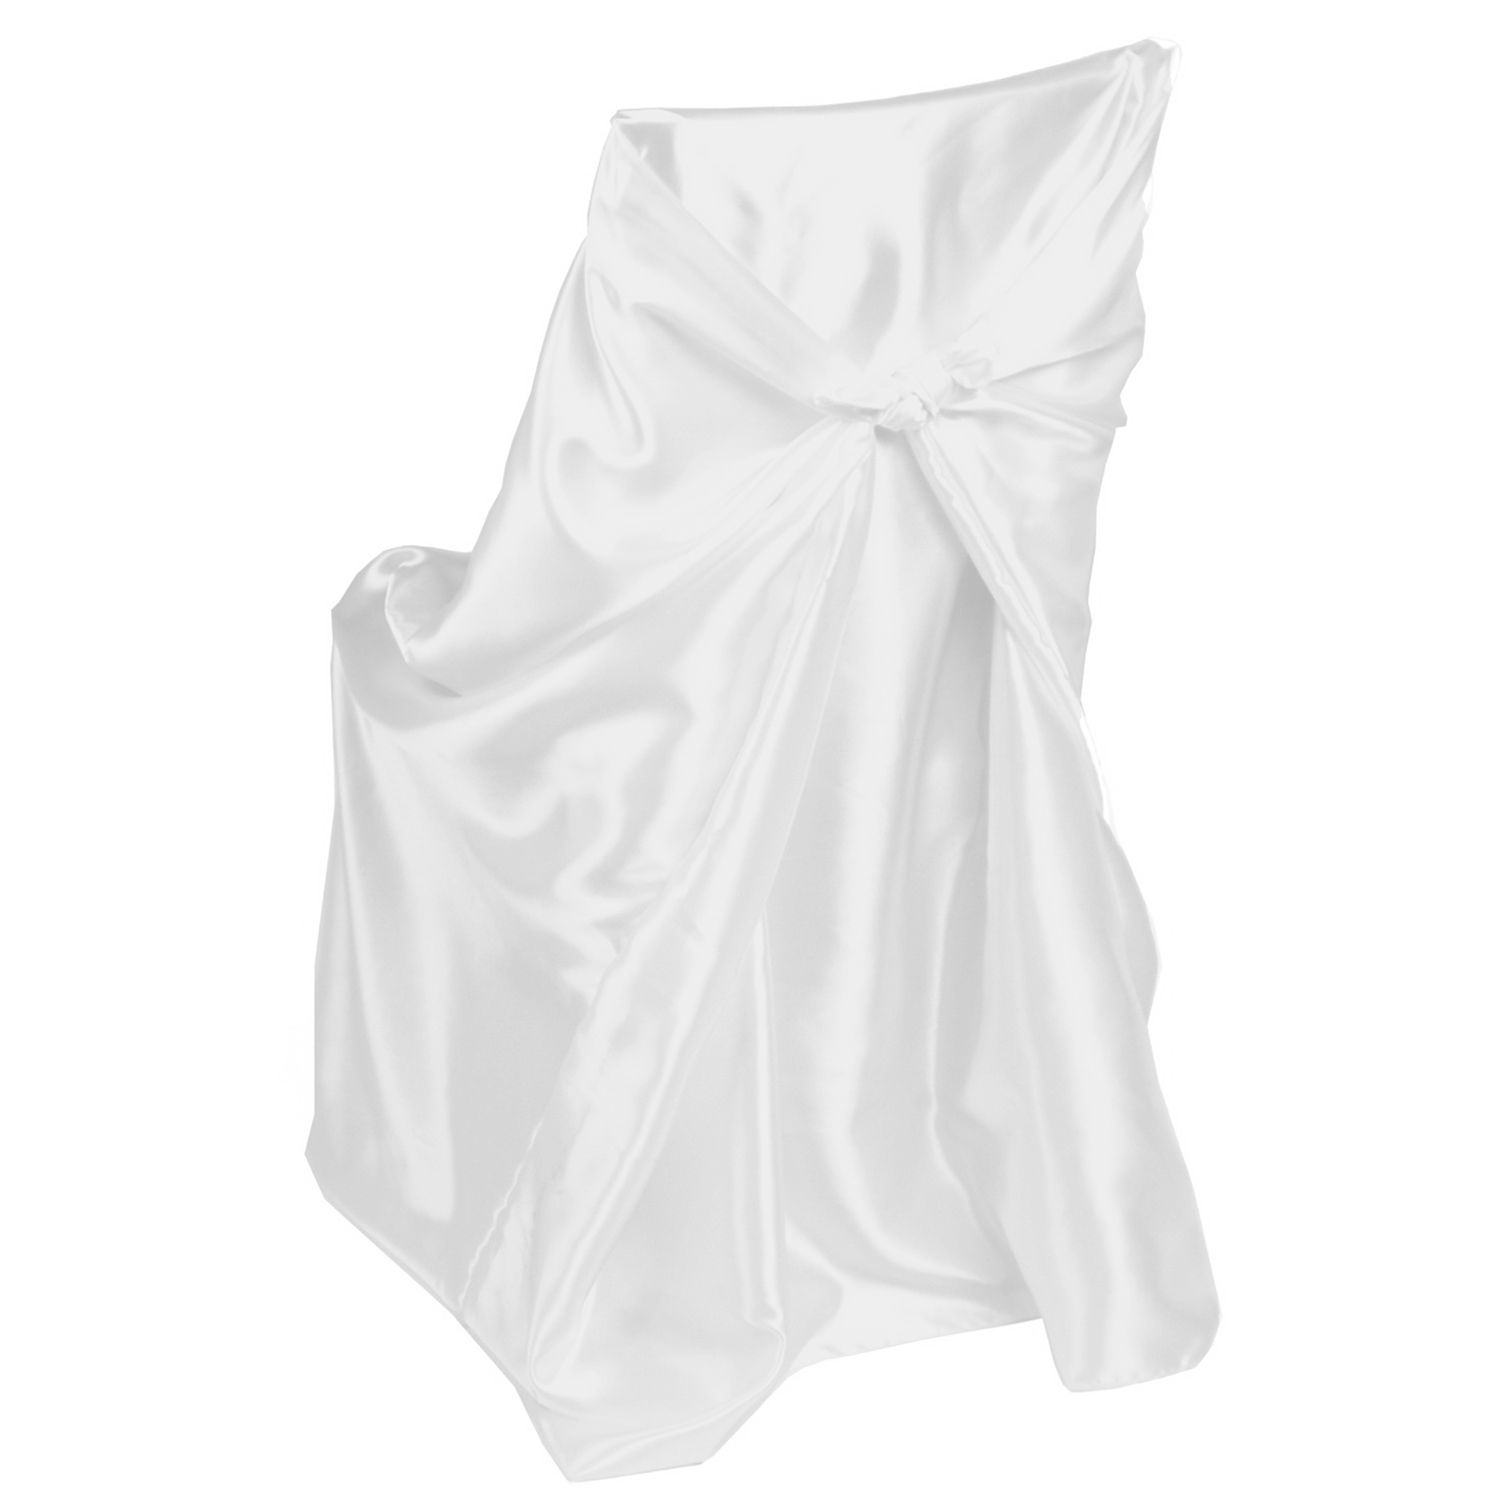 Cheap Universal Chair Covers Lounge Outdoor Target What S So Great About They Fit Almost Any Type Making Them Our Most Versatile Cover Designed To Provide Banquet